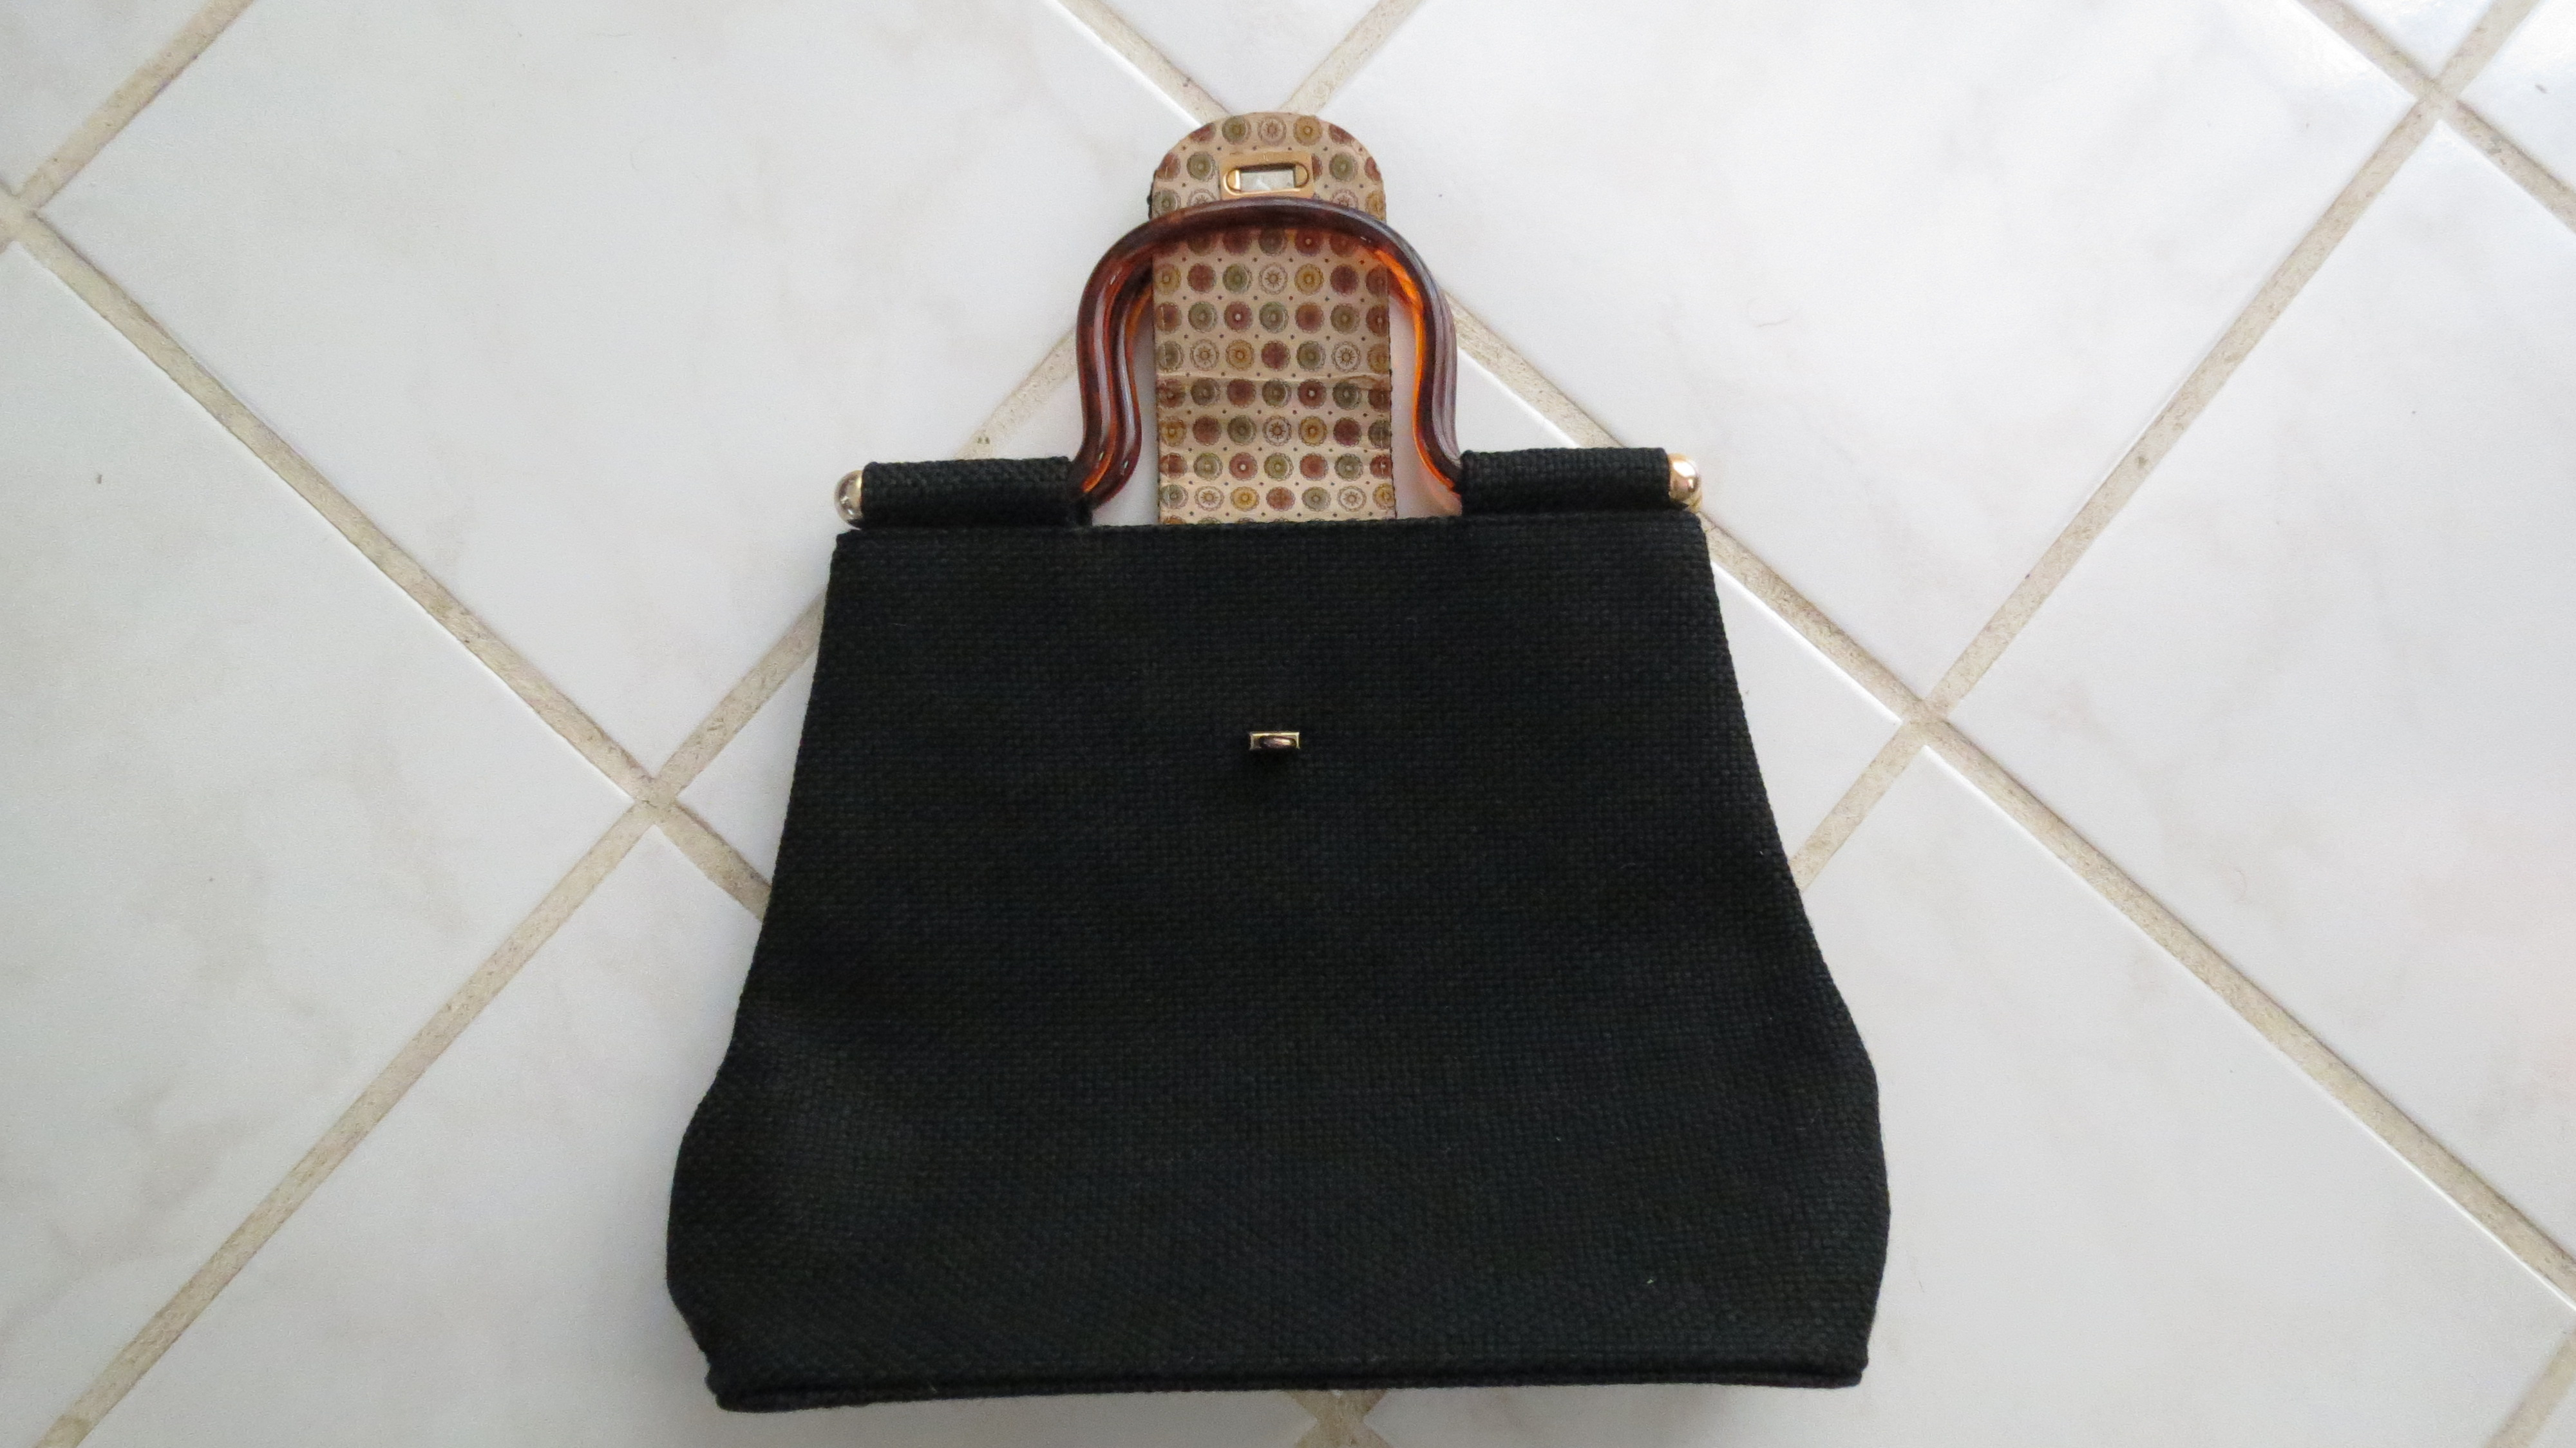 TRUE VINTAGE 1960'S TOTE BAG/HANDBAG - A REAL SIGN OF THE TIMES